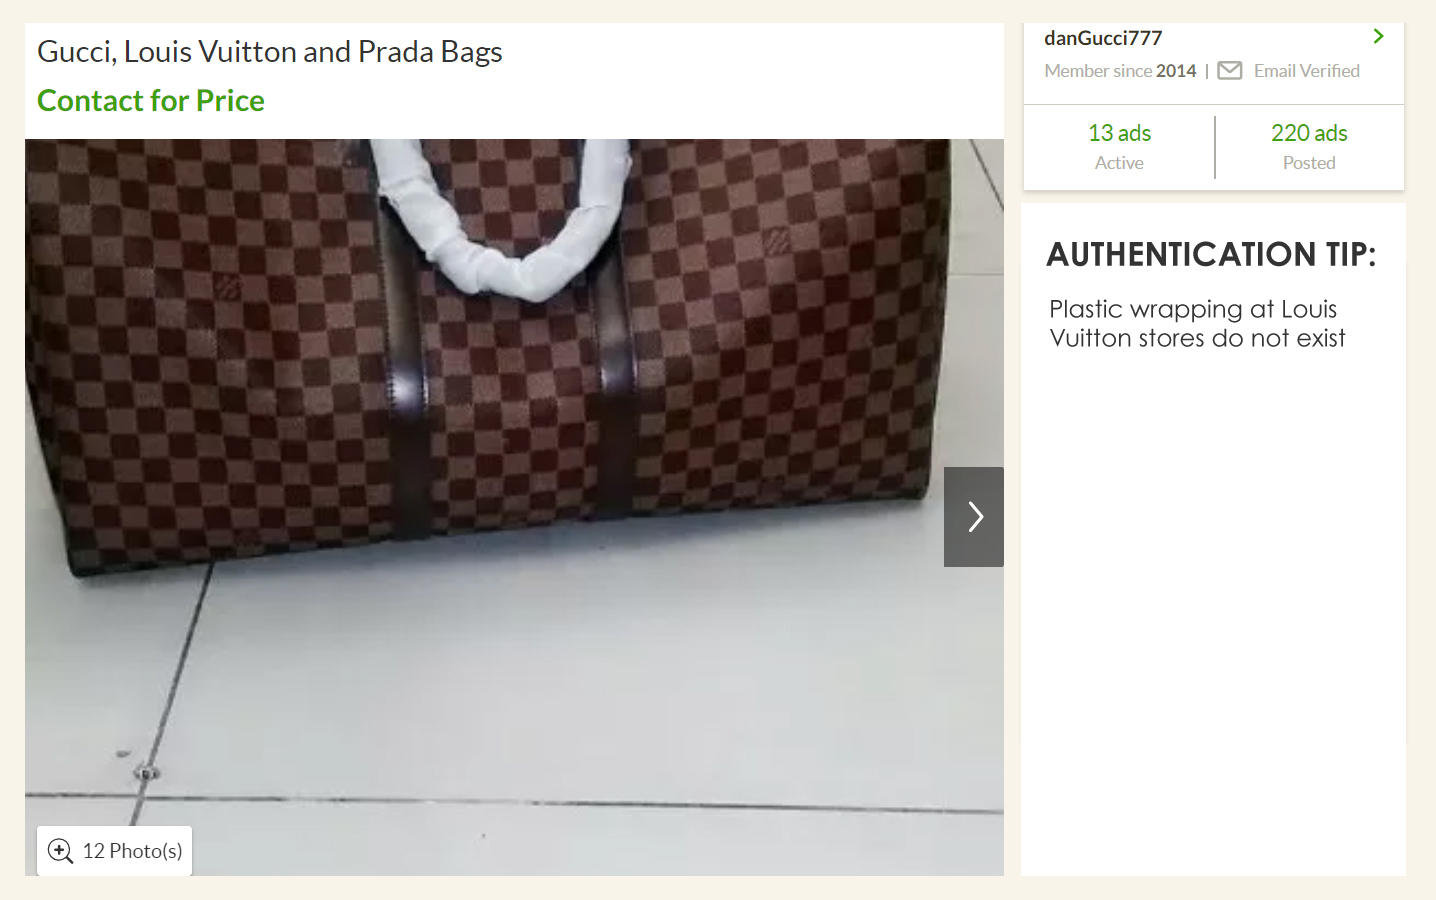 Fake Louis Vuitton with plastic wrapping